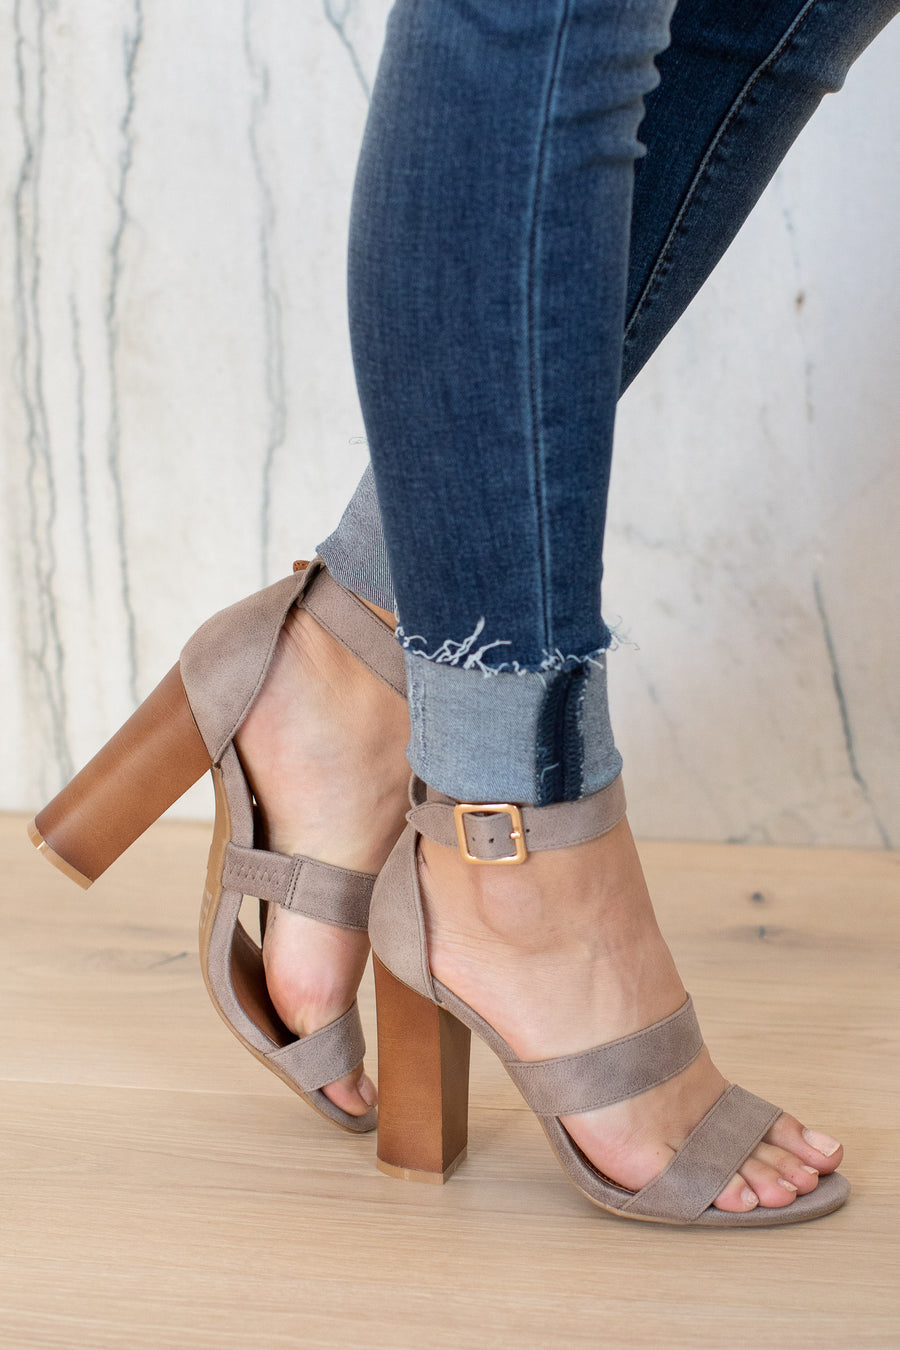 Madison Heels - Grey ankle strap heels with buckle, closet candy boutique 1